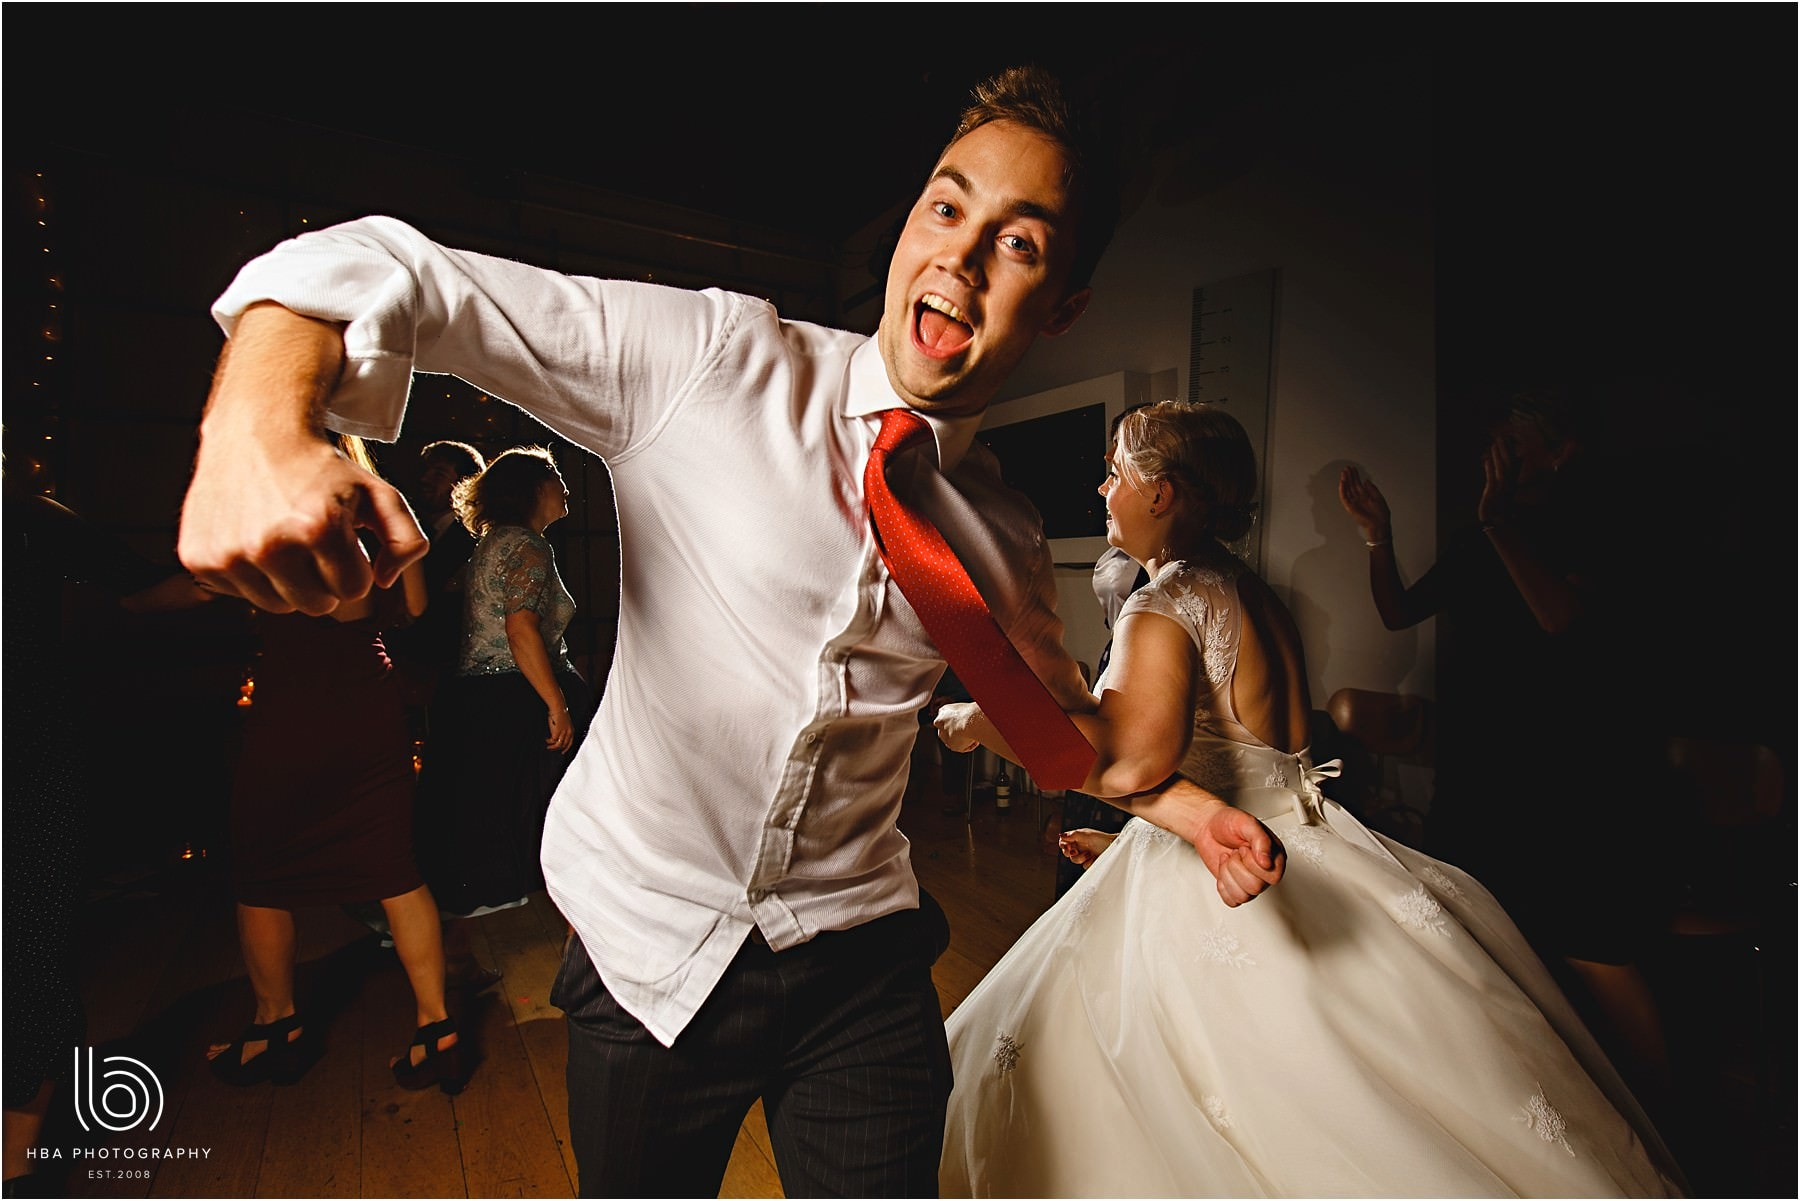 A guy with a red tie dancing